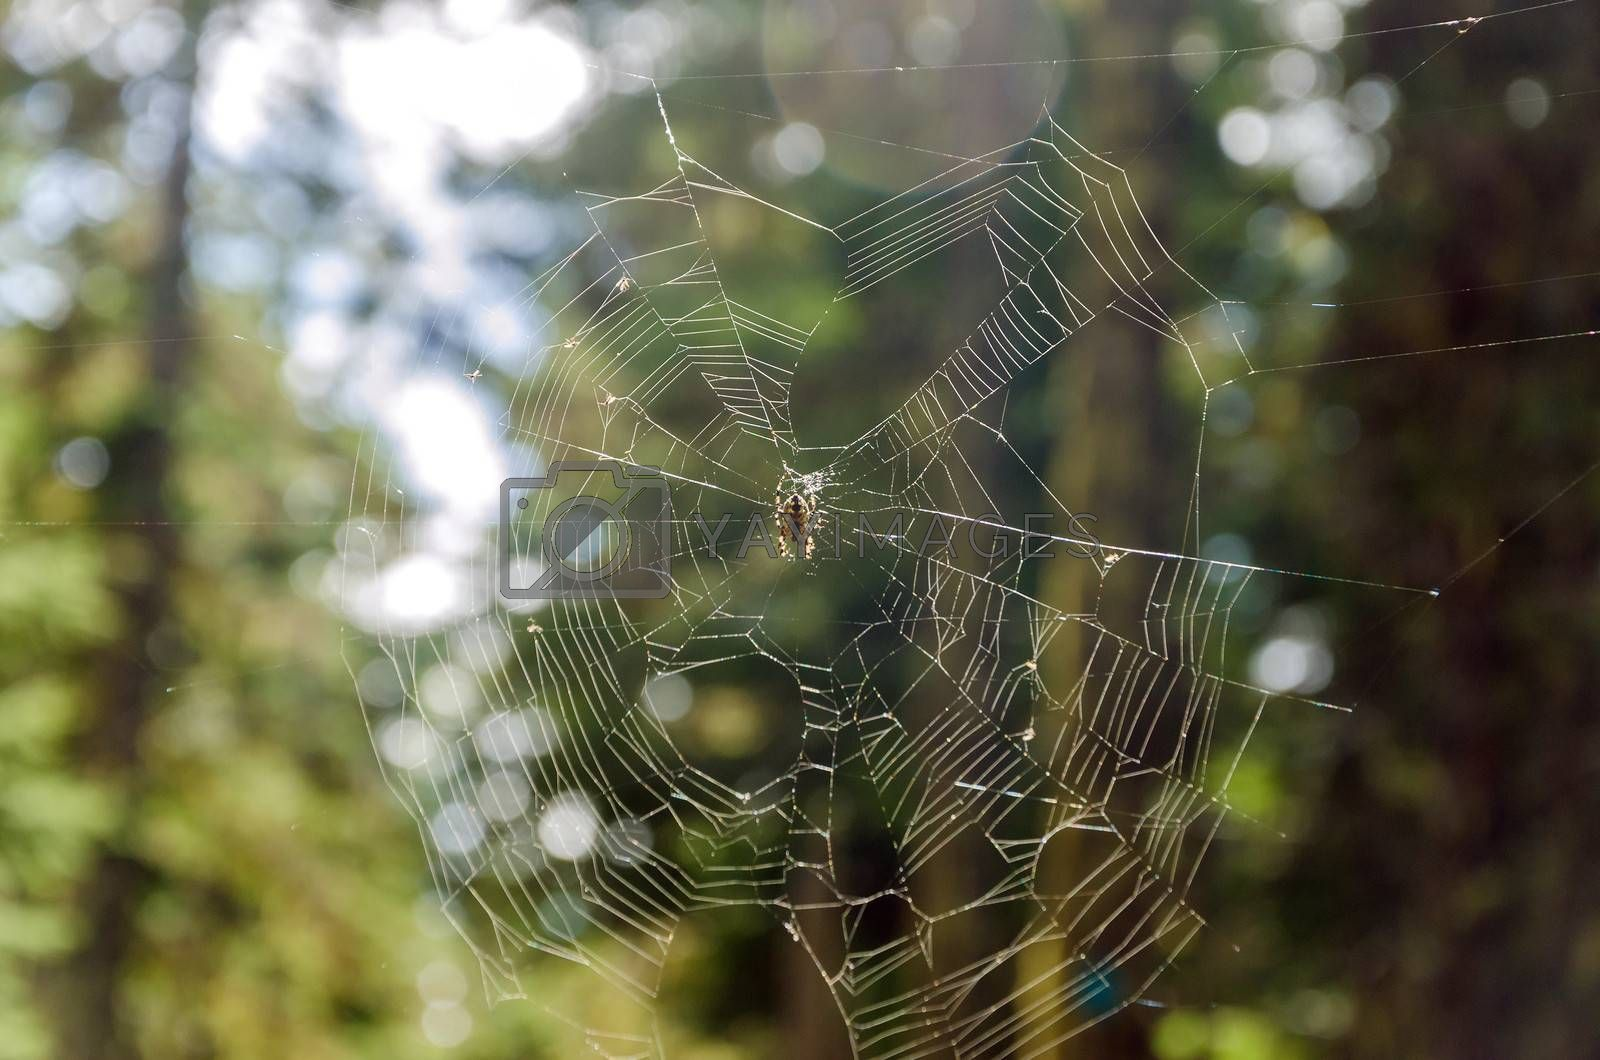 Spider on a spiderweb in a forest